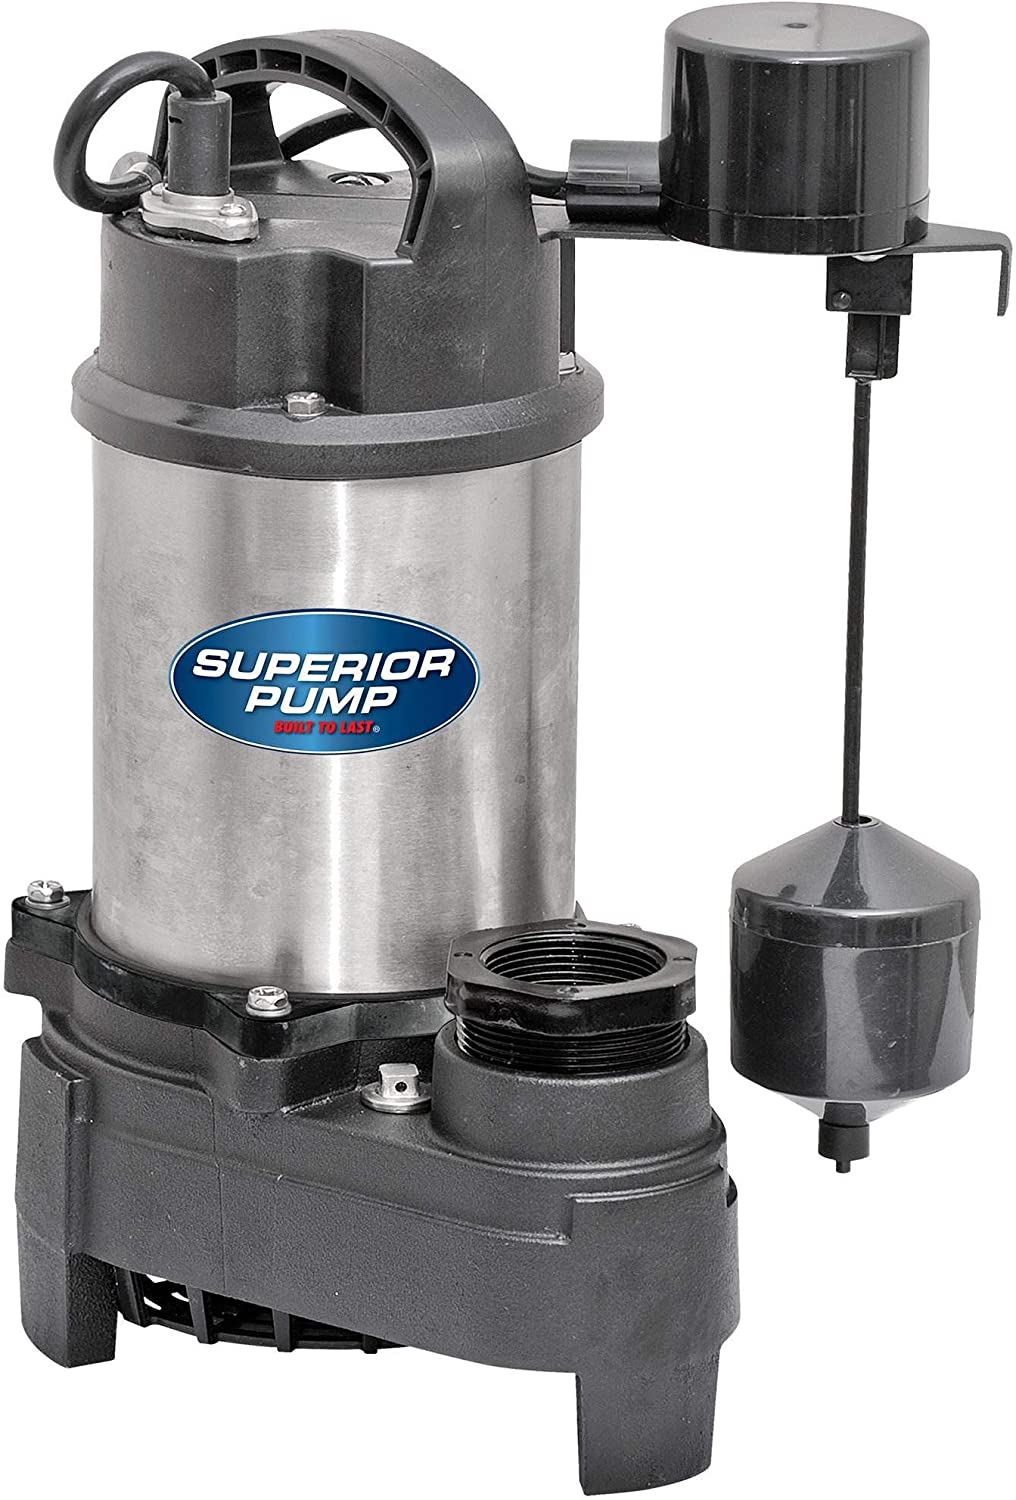 Superior Pump 92751 3/4 HP Stainless Steel and Cast Iron Sump Pump